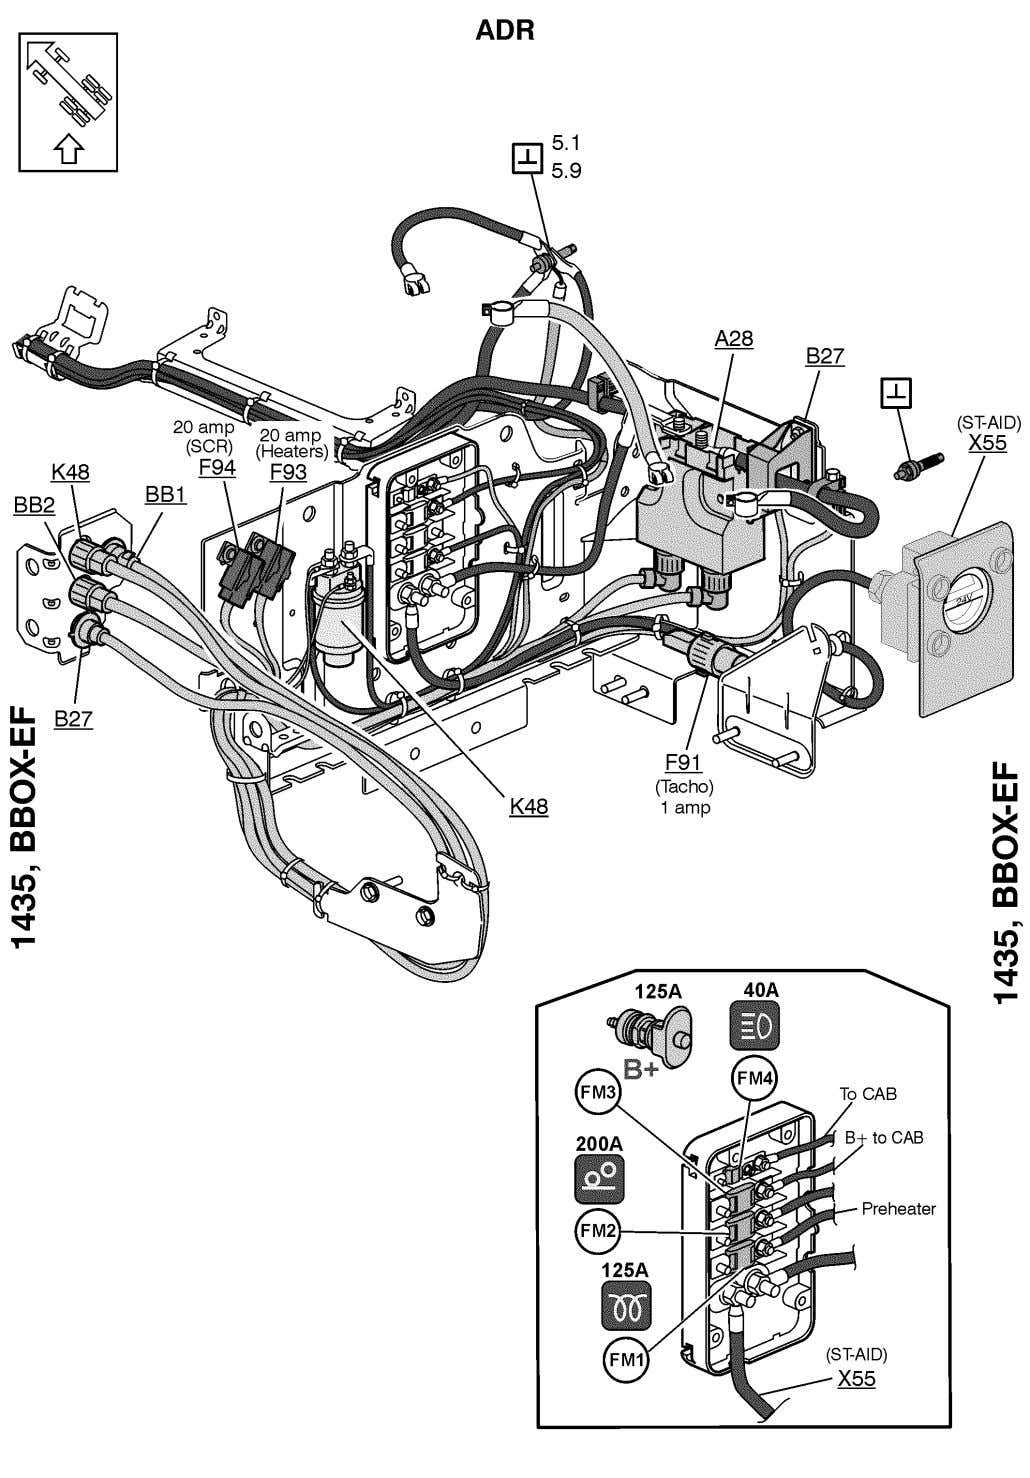 T3068088 Page 204 (298) Wiring diagram